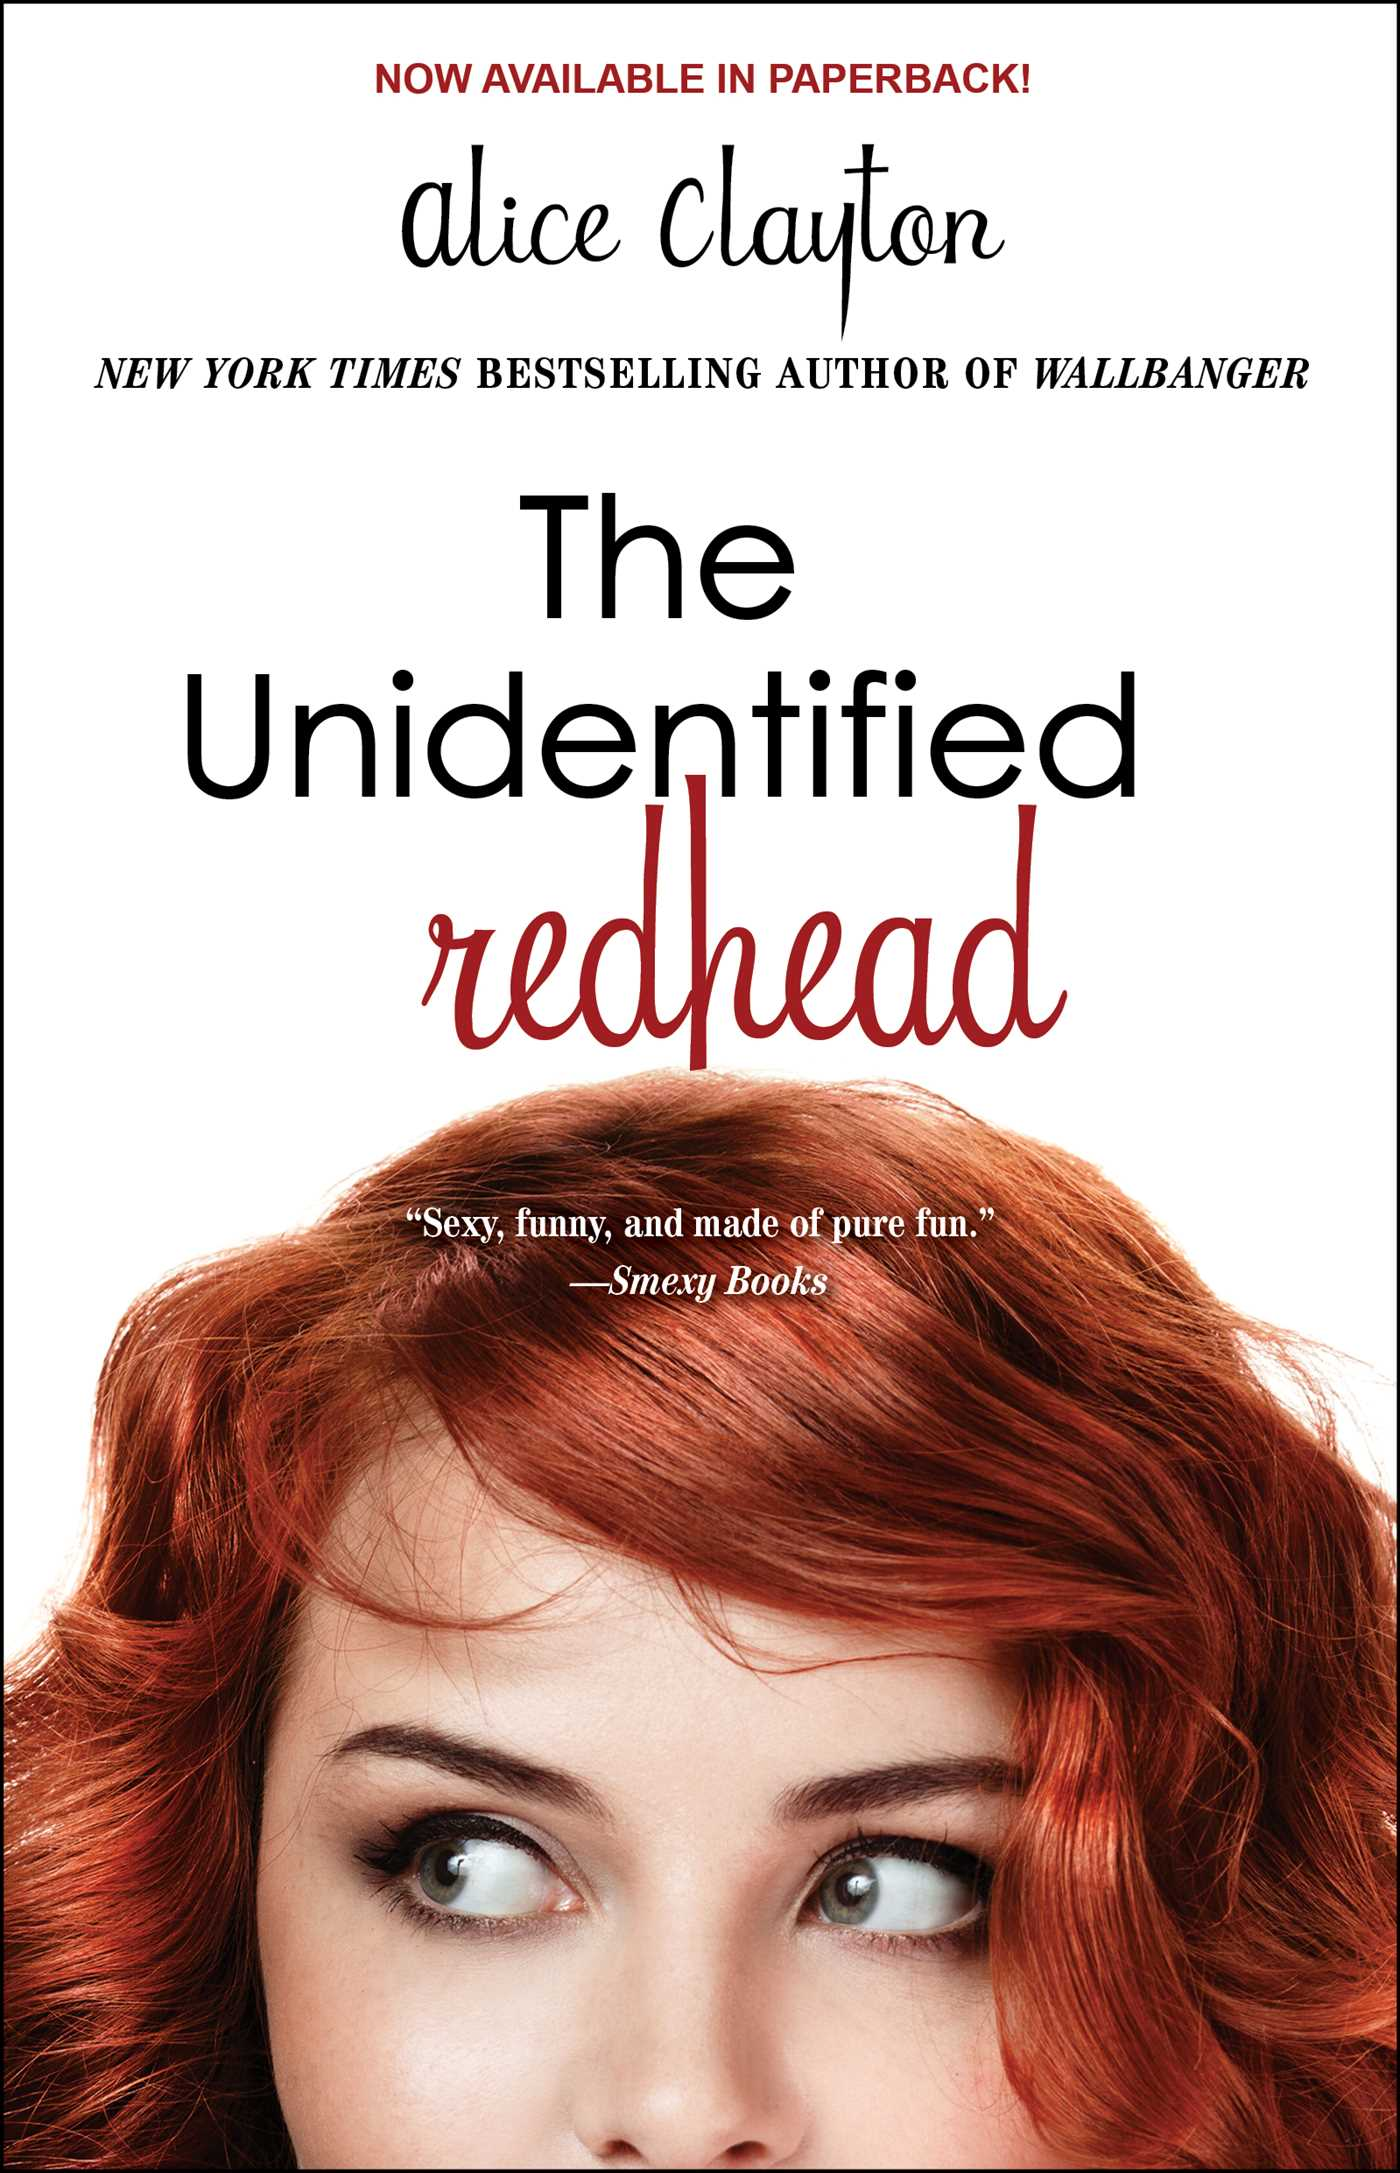 The unidentified redhead 9781476741222 hr